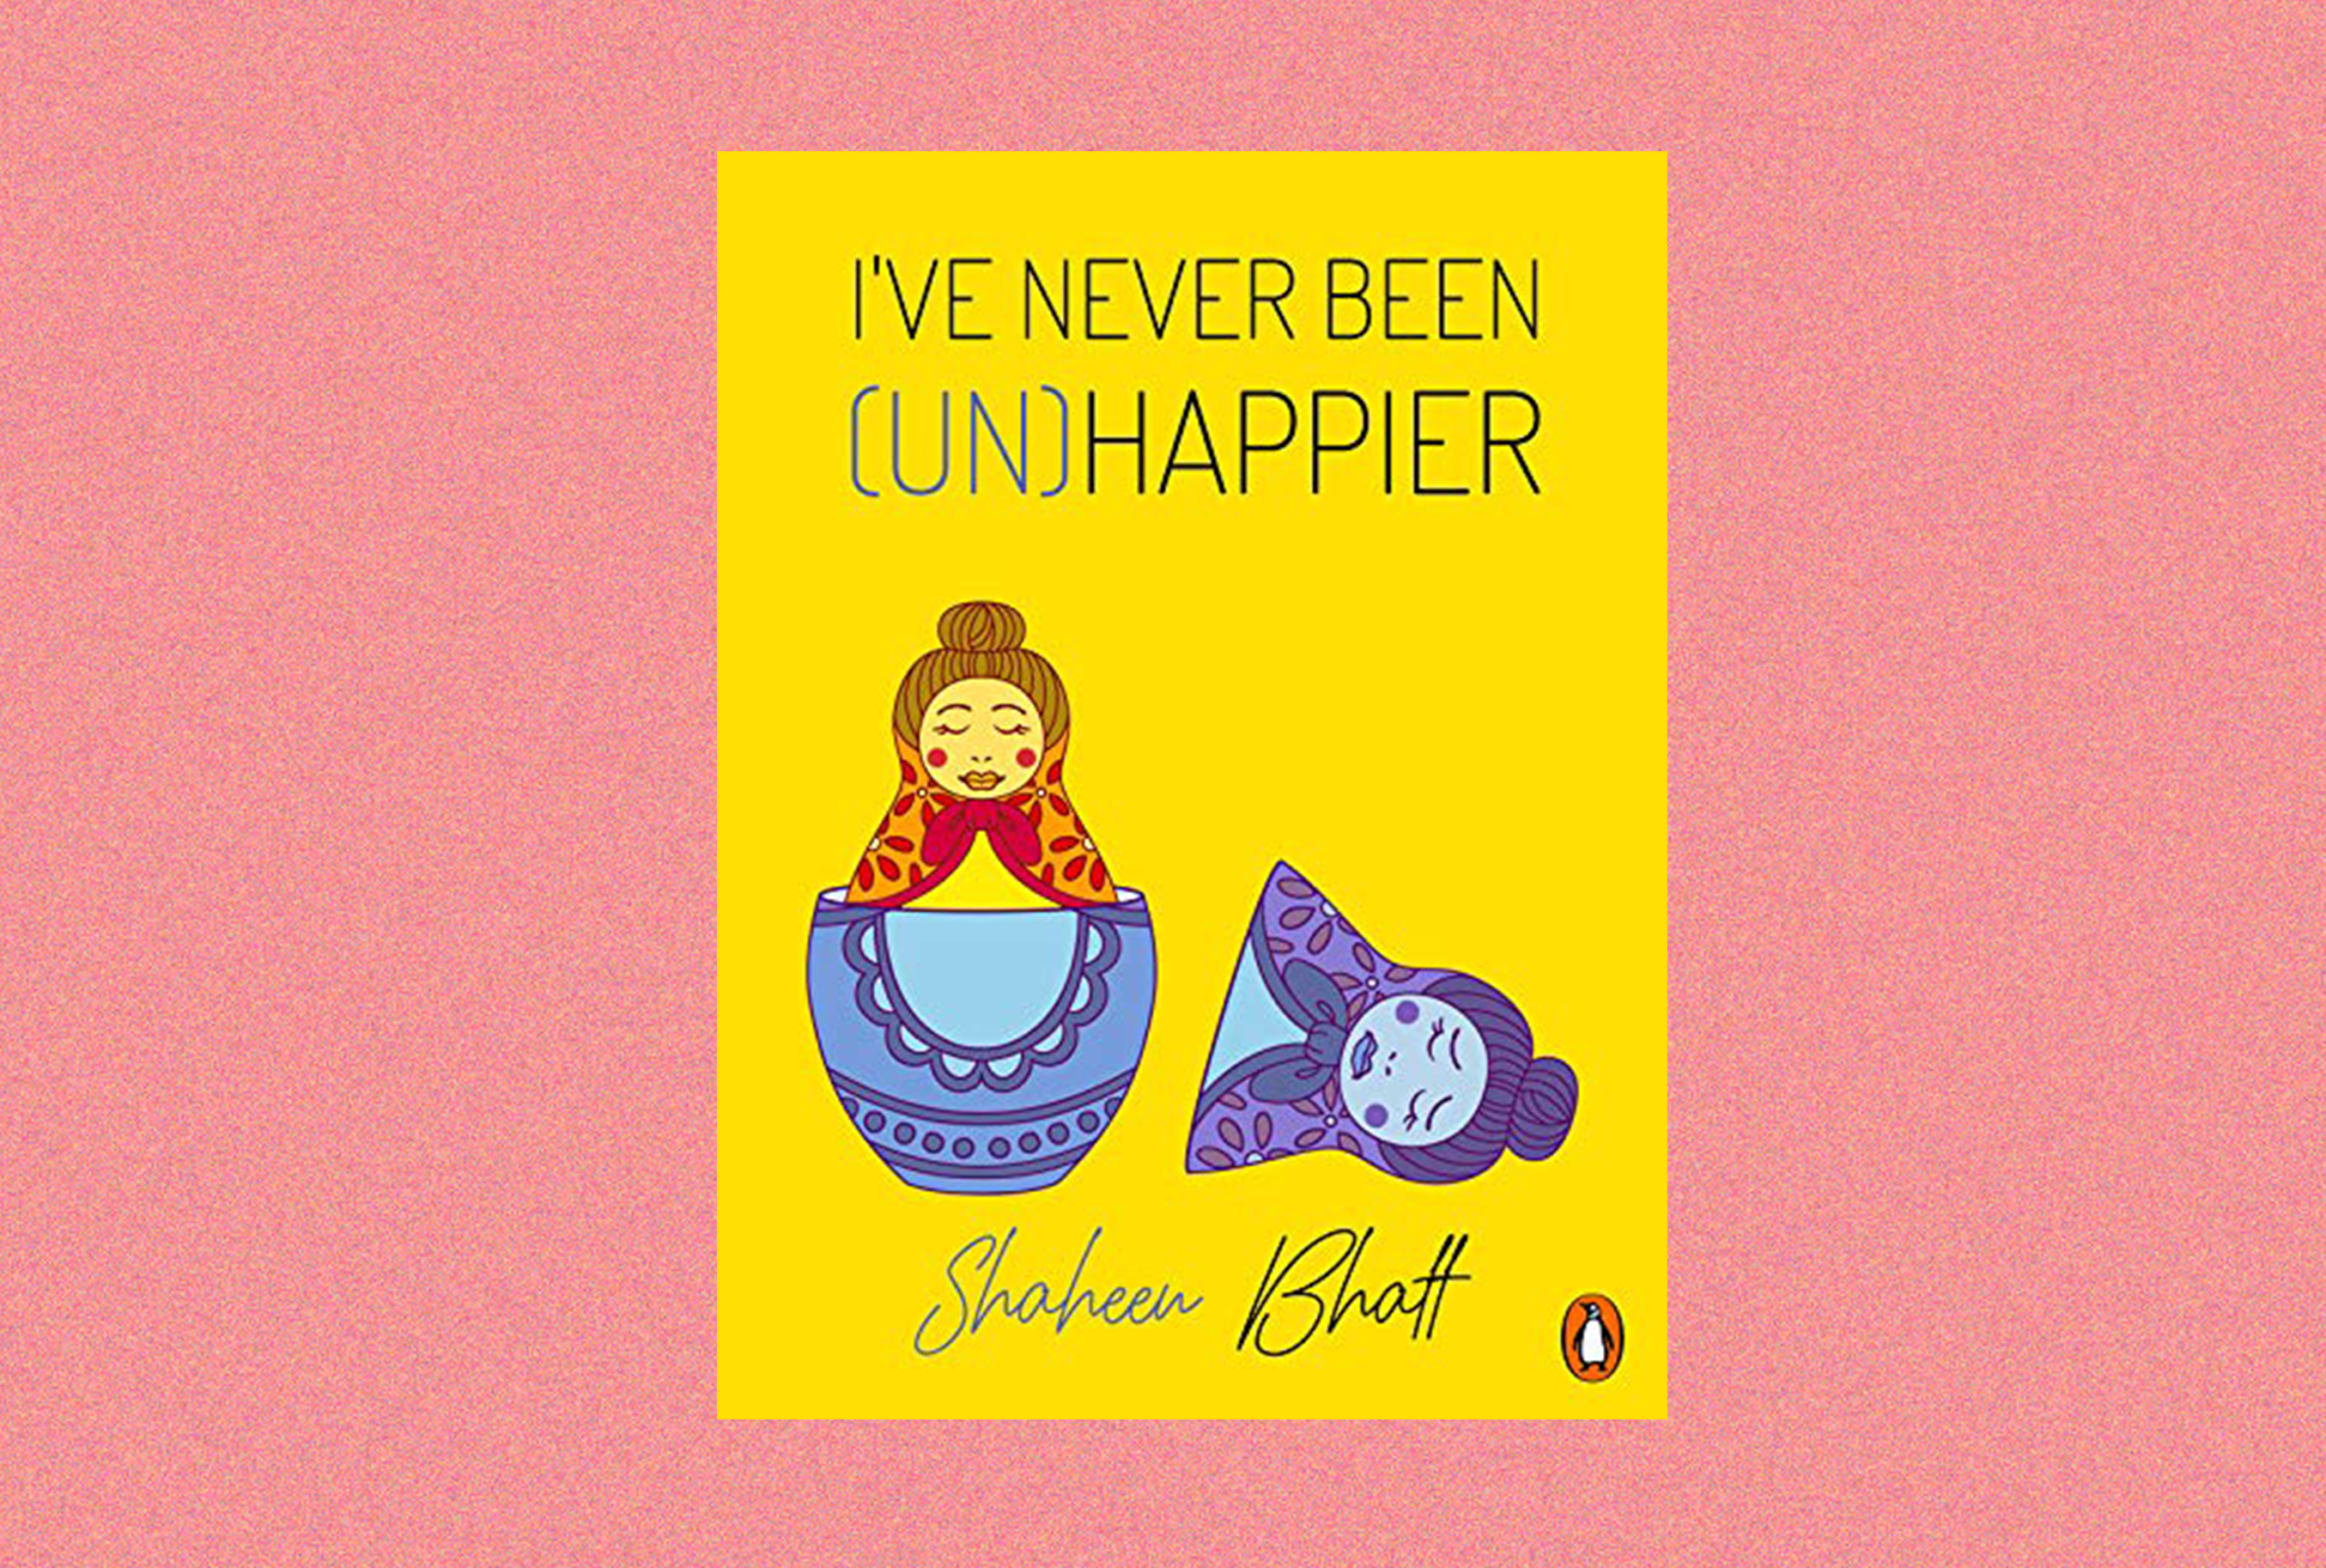 In this picture is the book cover art for I've never been Unhappier by Shaheen Bhatt, and the cover spells out the title and the author's name. The illustration features an open Russian Doll. The external doll is of a blue hue and the one on the inside is yellow and red. The background is also yellow.